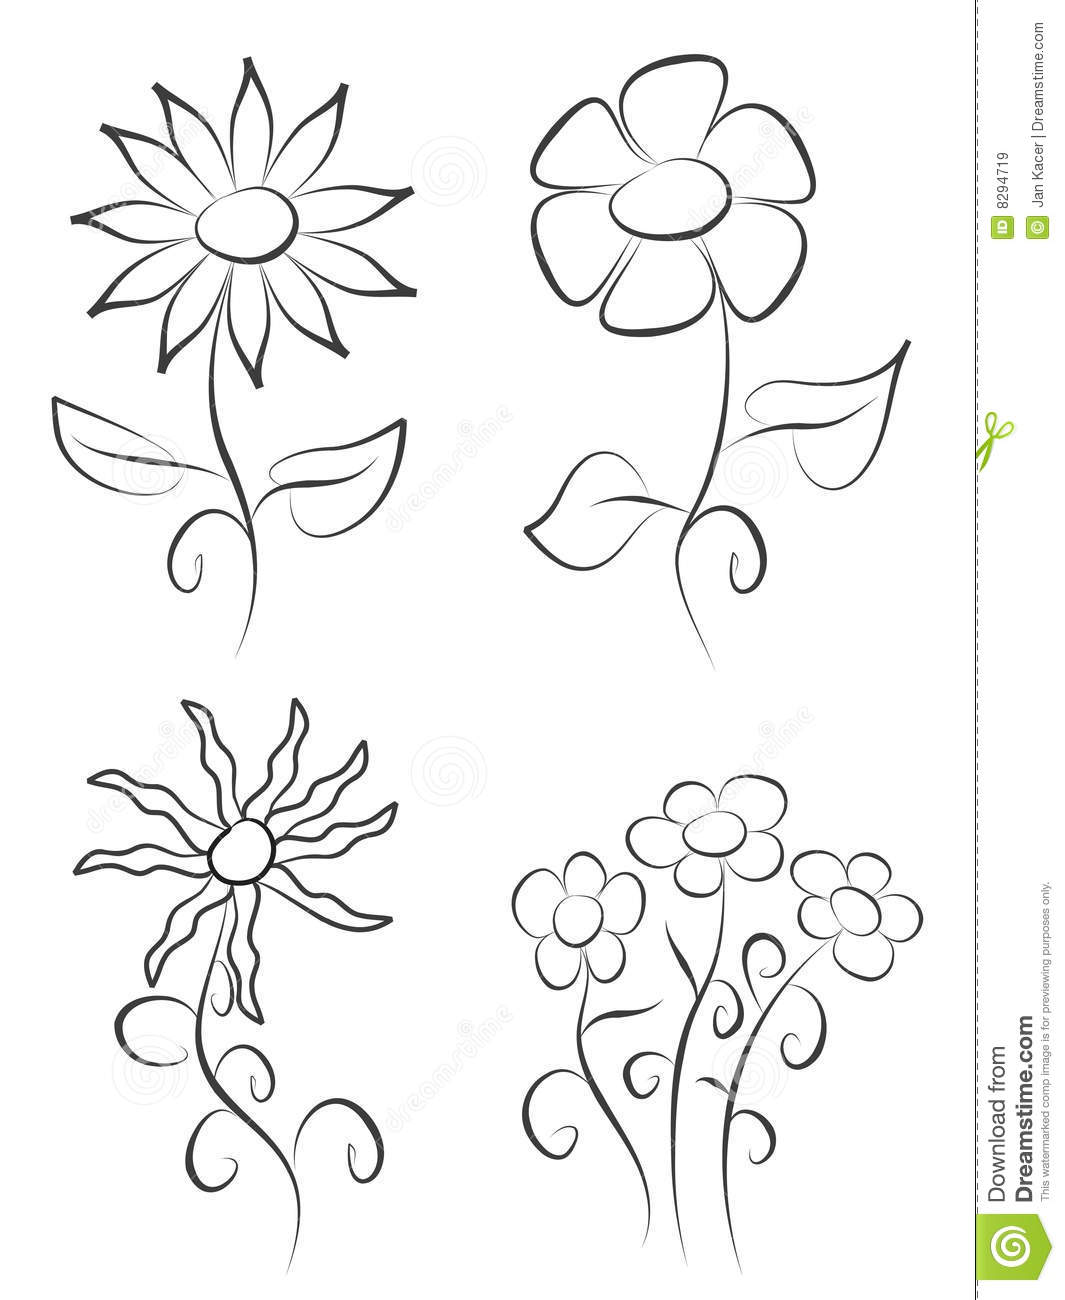 Easy Step By Step To Paint Flowers